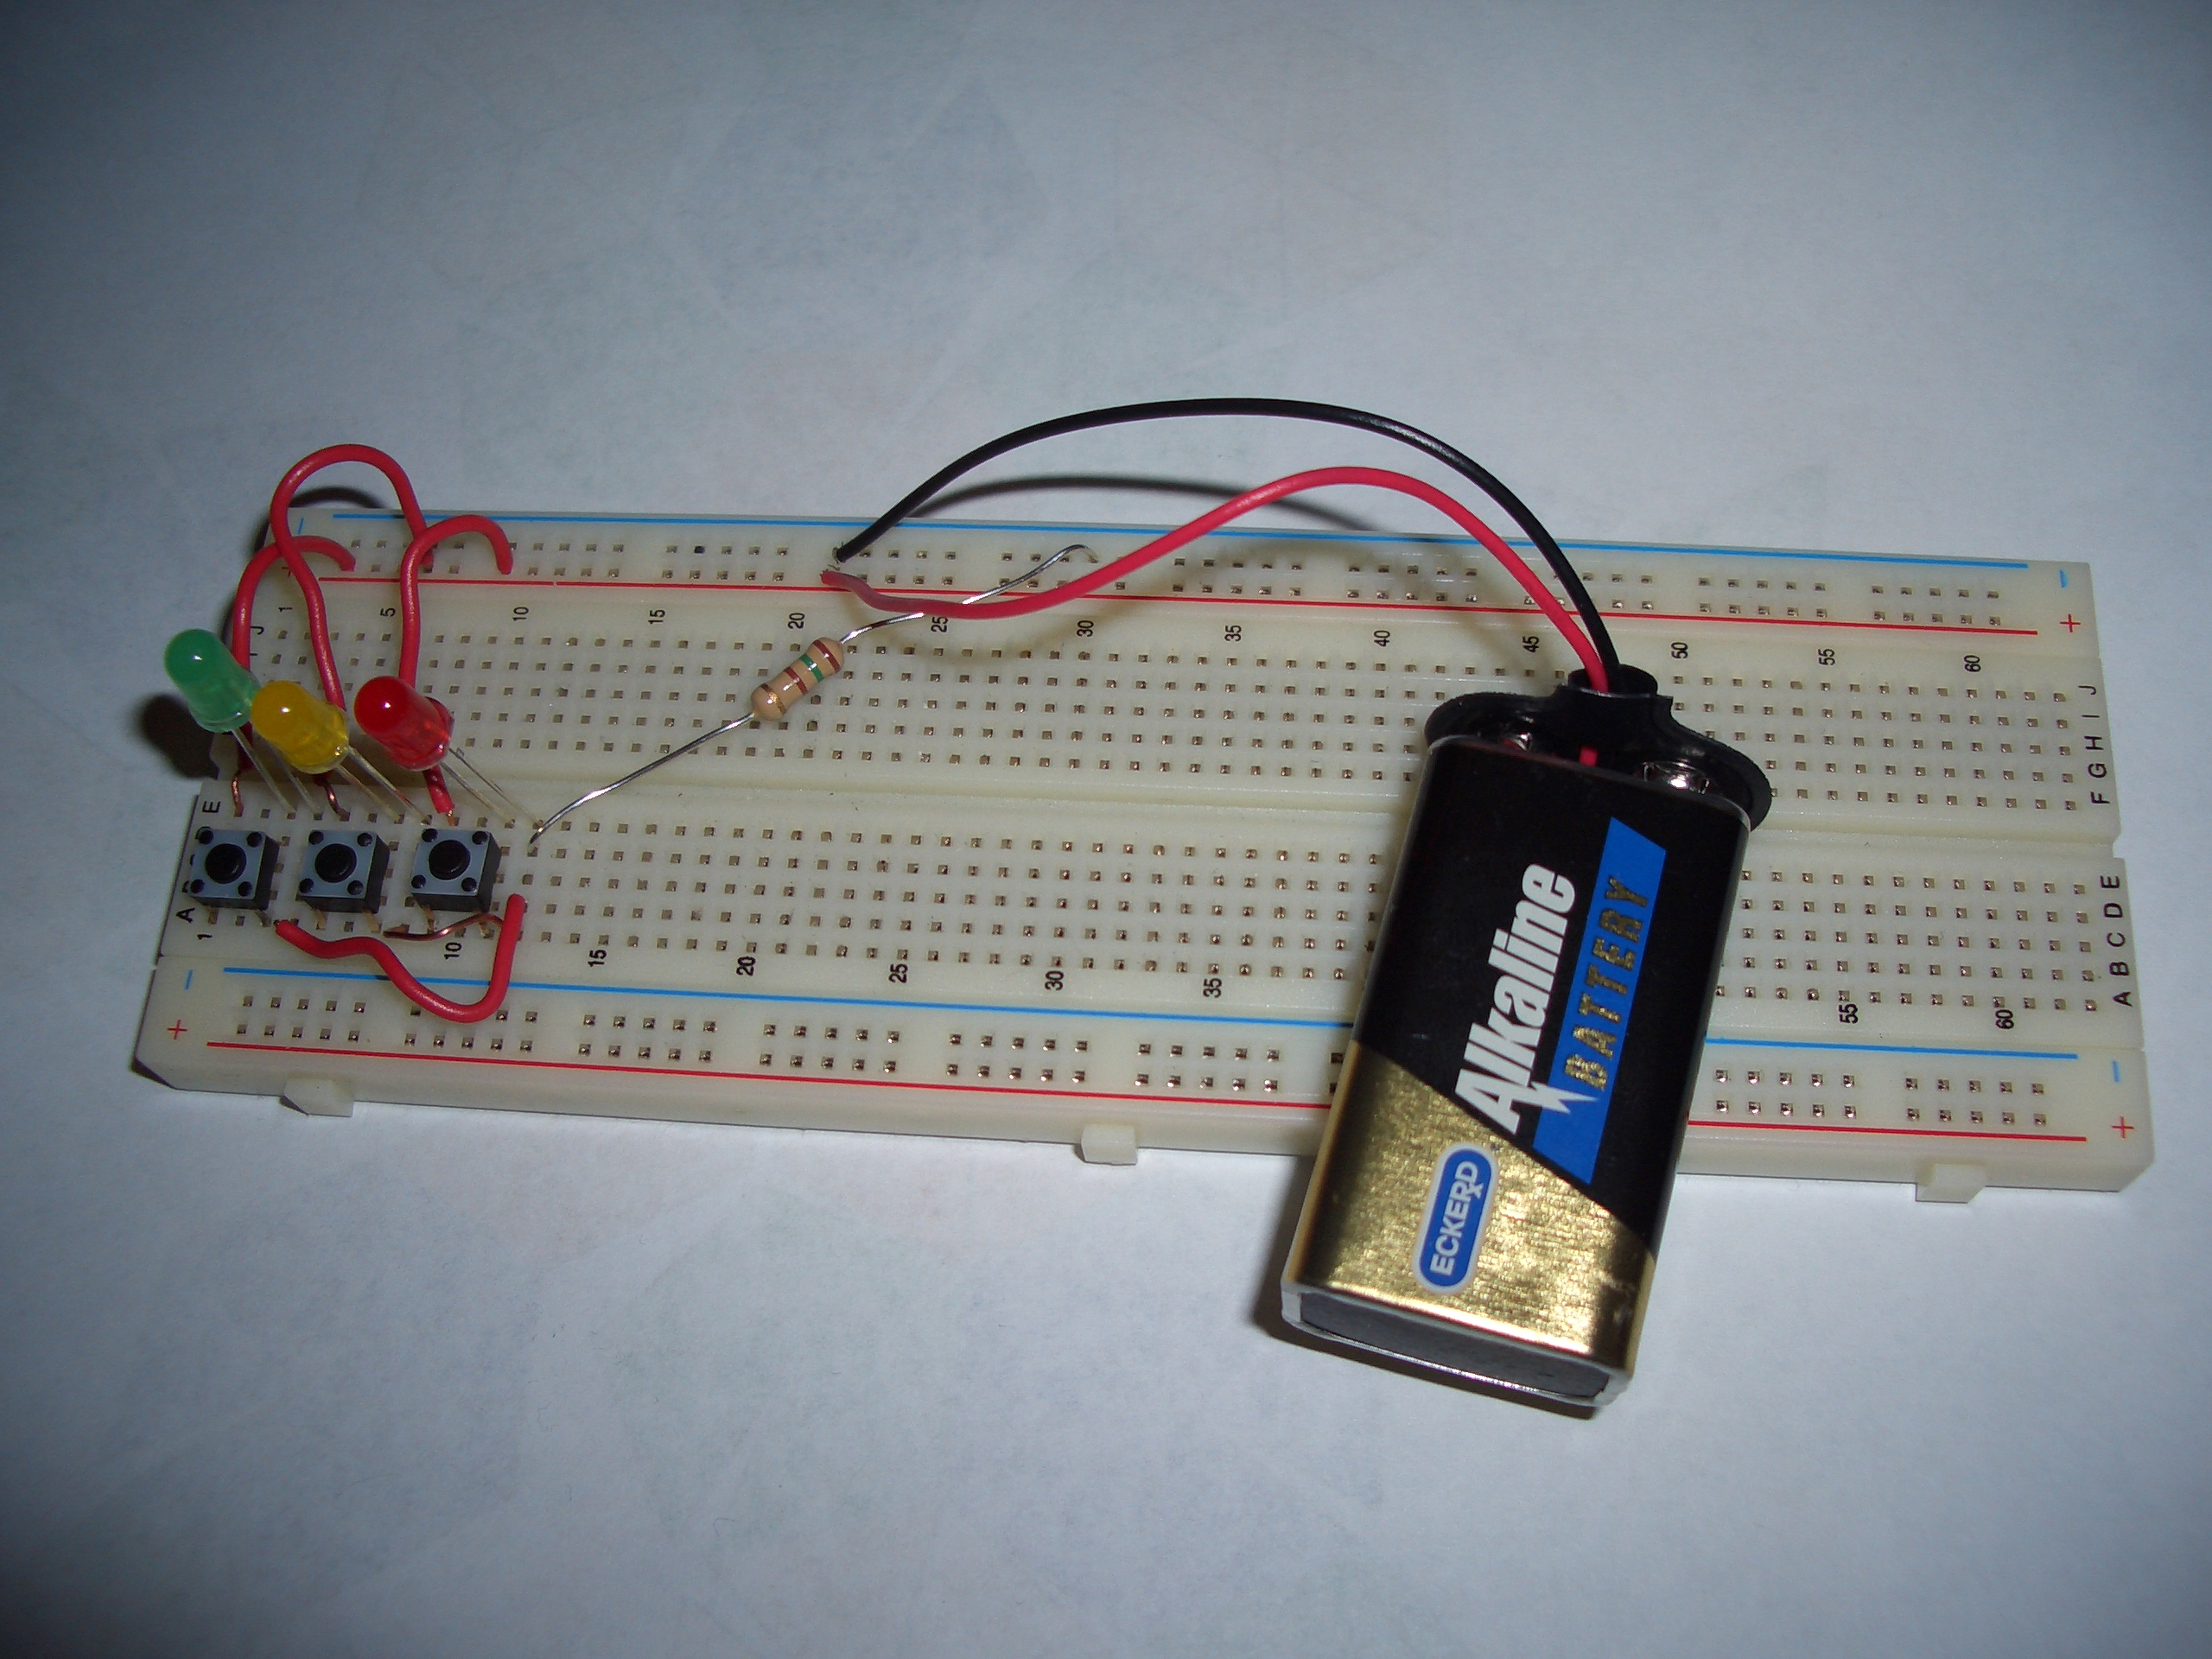 Solderless Breadboard with LEDs